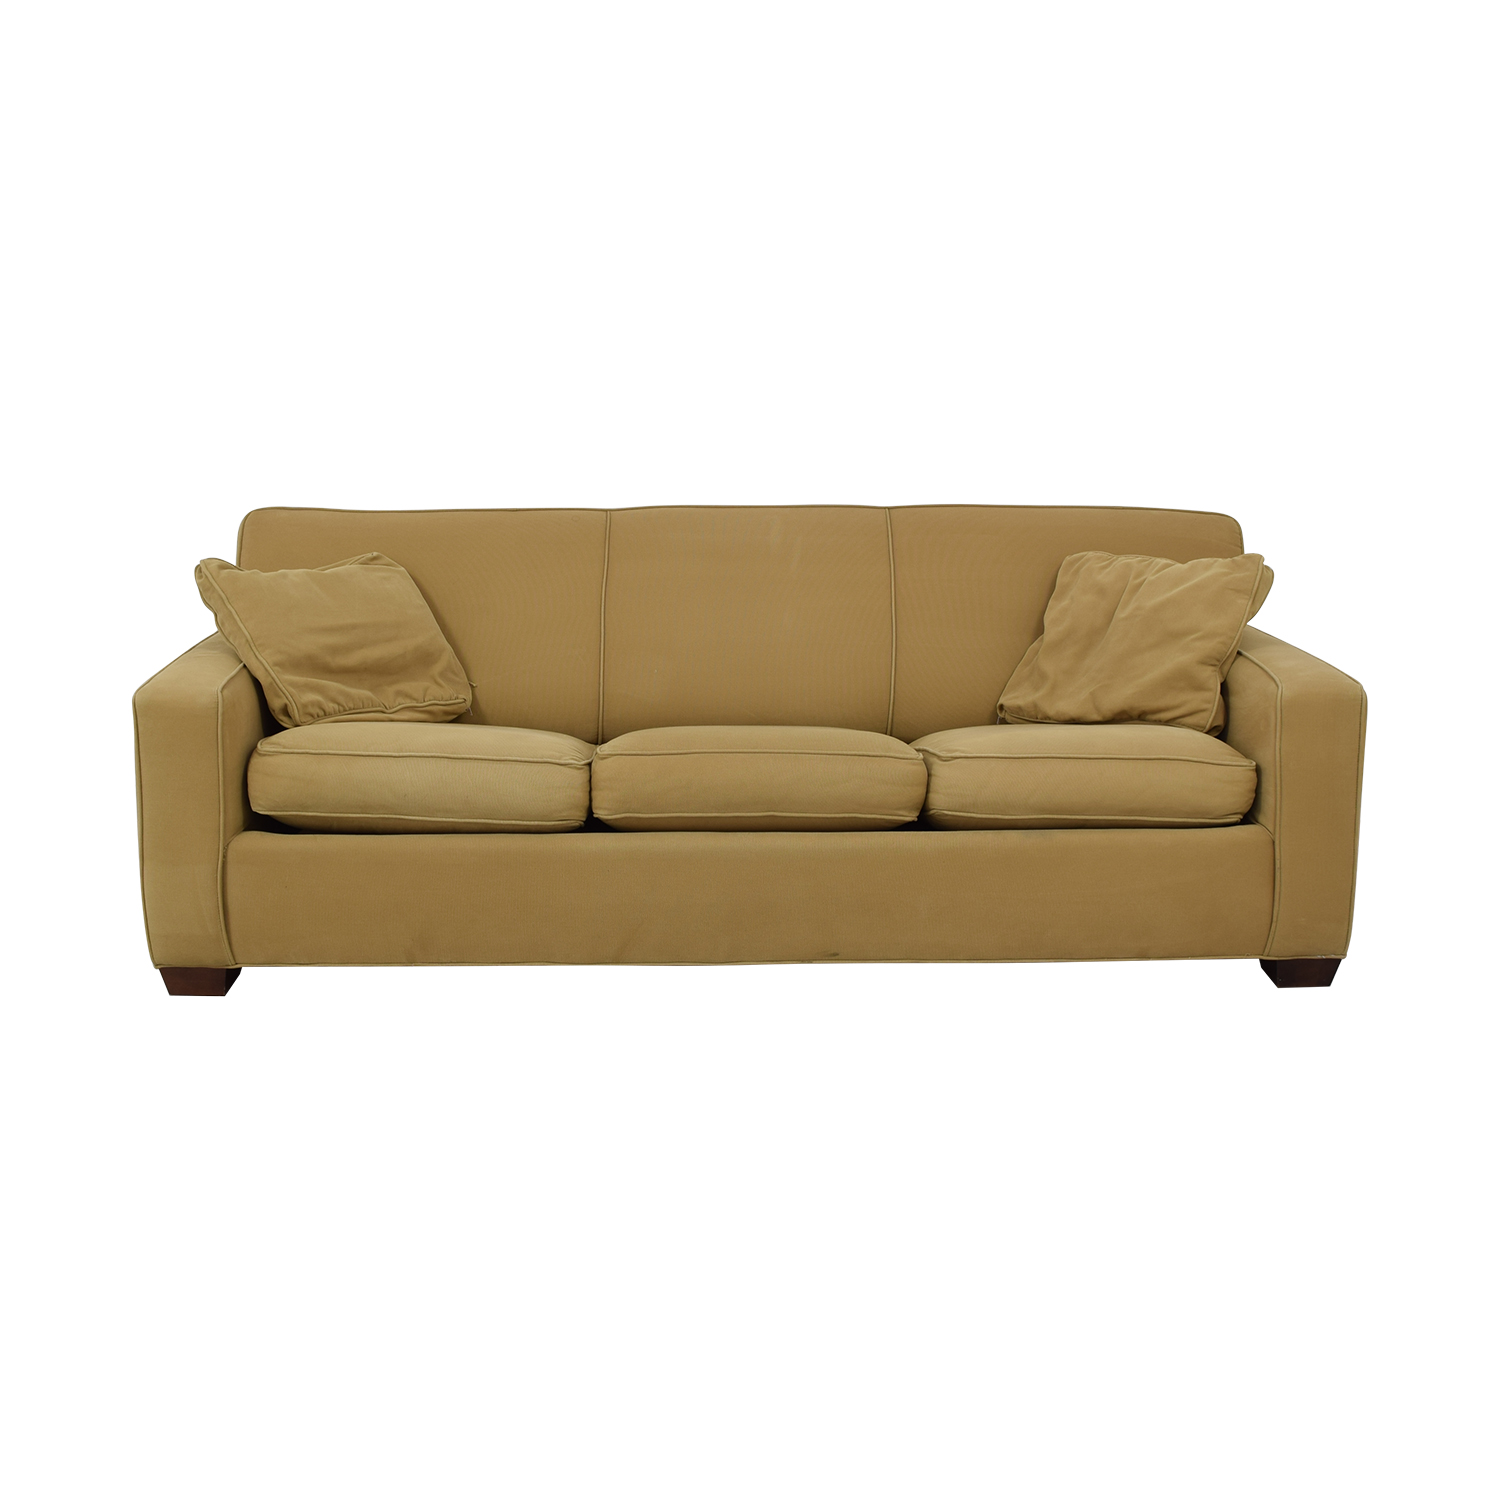 Crate & Barrel Crate & Barrel Cameron Queen Sleeper Sofa Sofa Beds